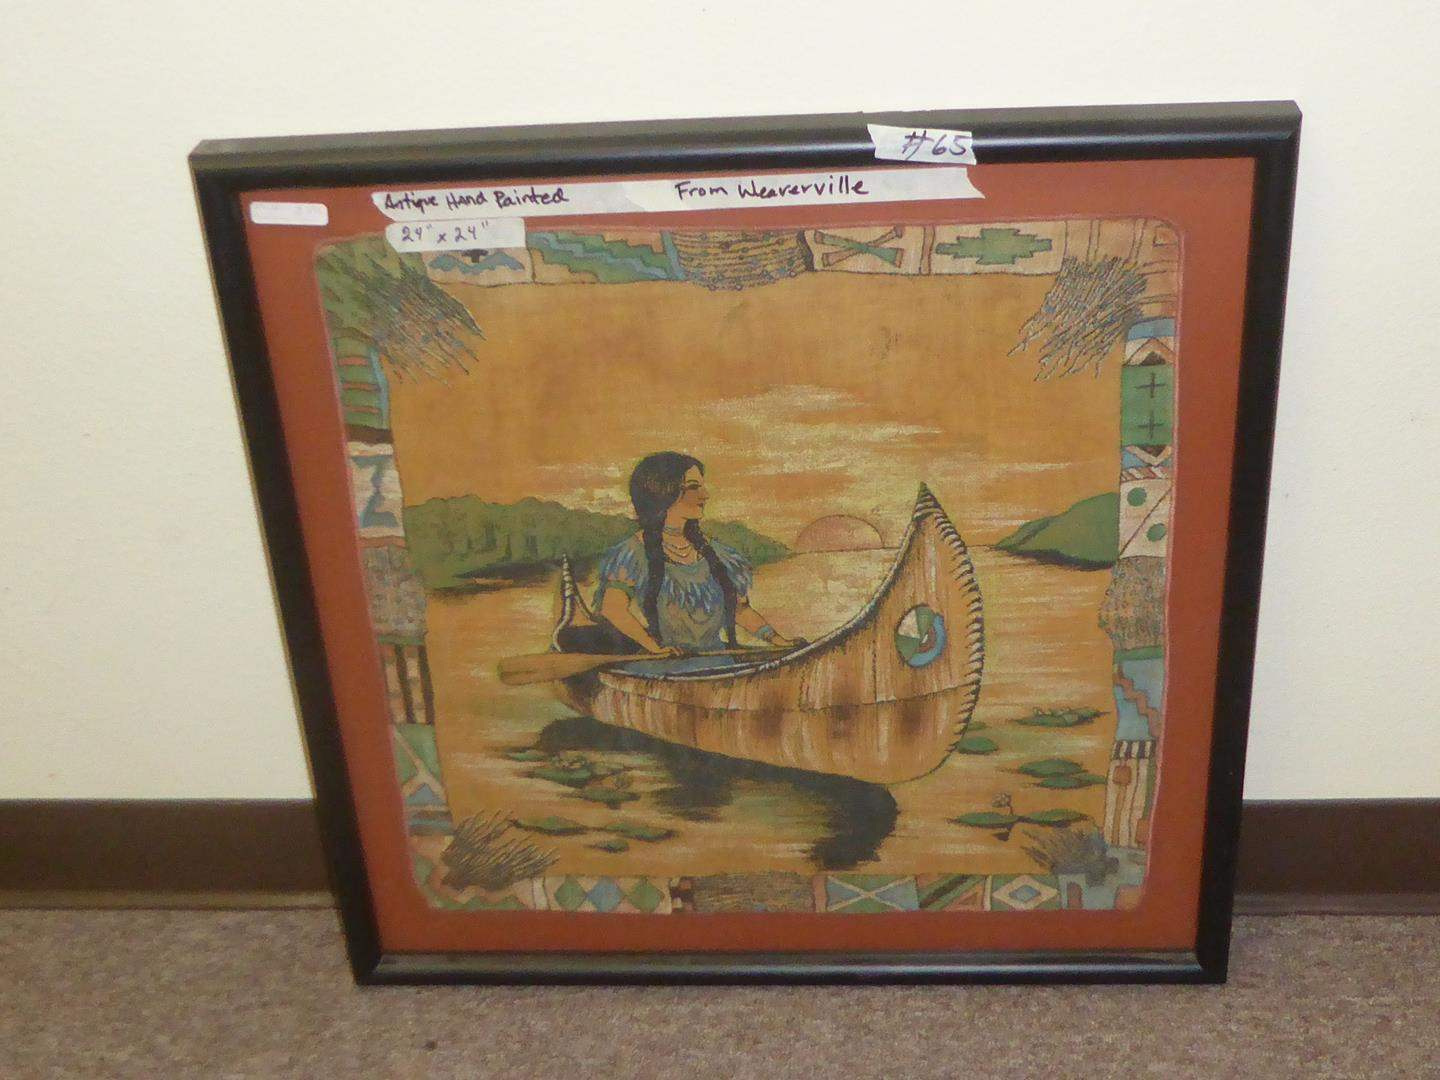 Lot # 65 - Framed Antique Indian Maiden in Canoe Hand Painted Fabric From Weaverville, Ca. (main image)